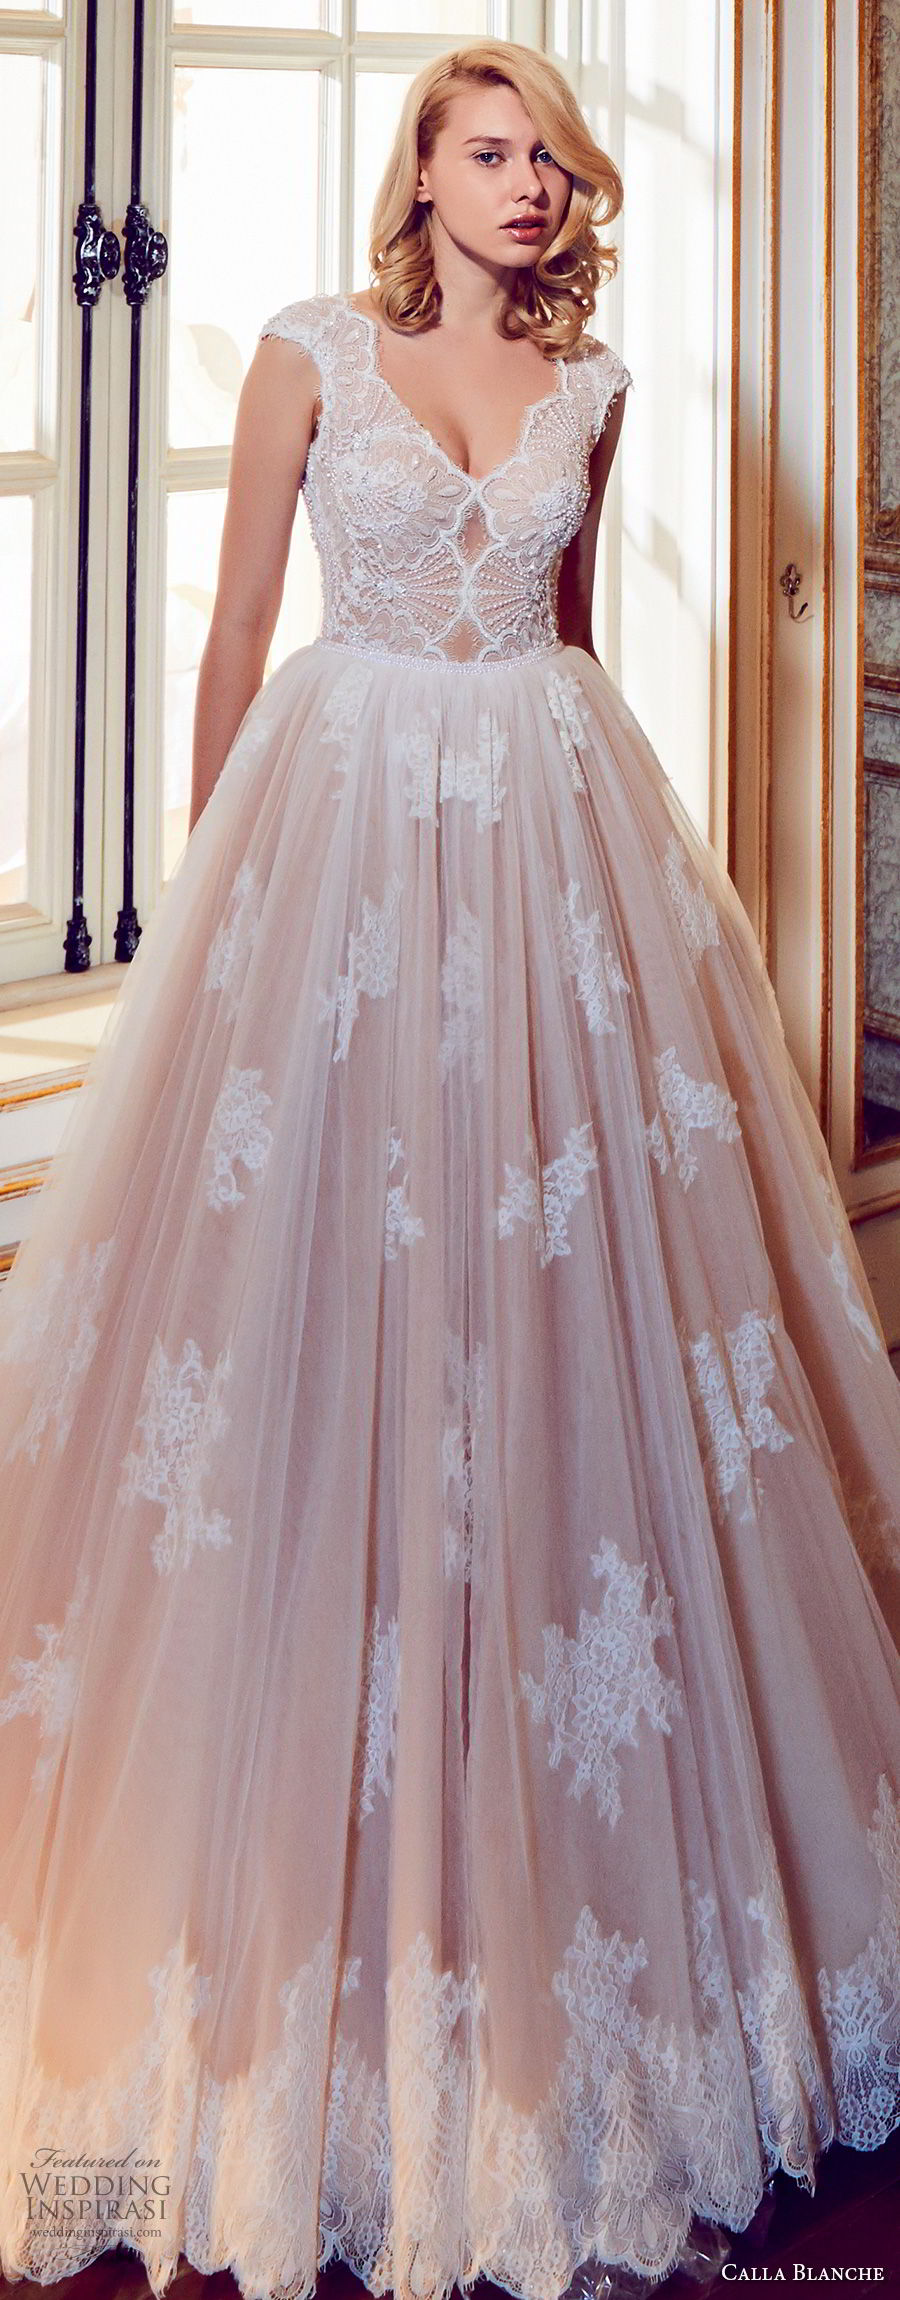 calla blanche fall 2017 bridal cap sleeves v neck heavily embellished bodice romantic blush color a line wedding dress open v back royal train (43) zv